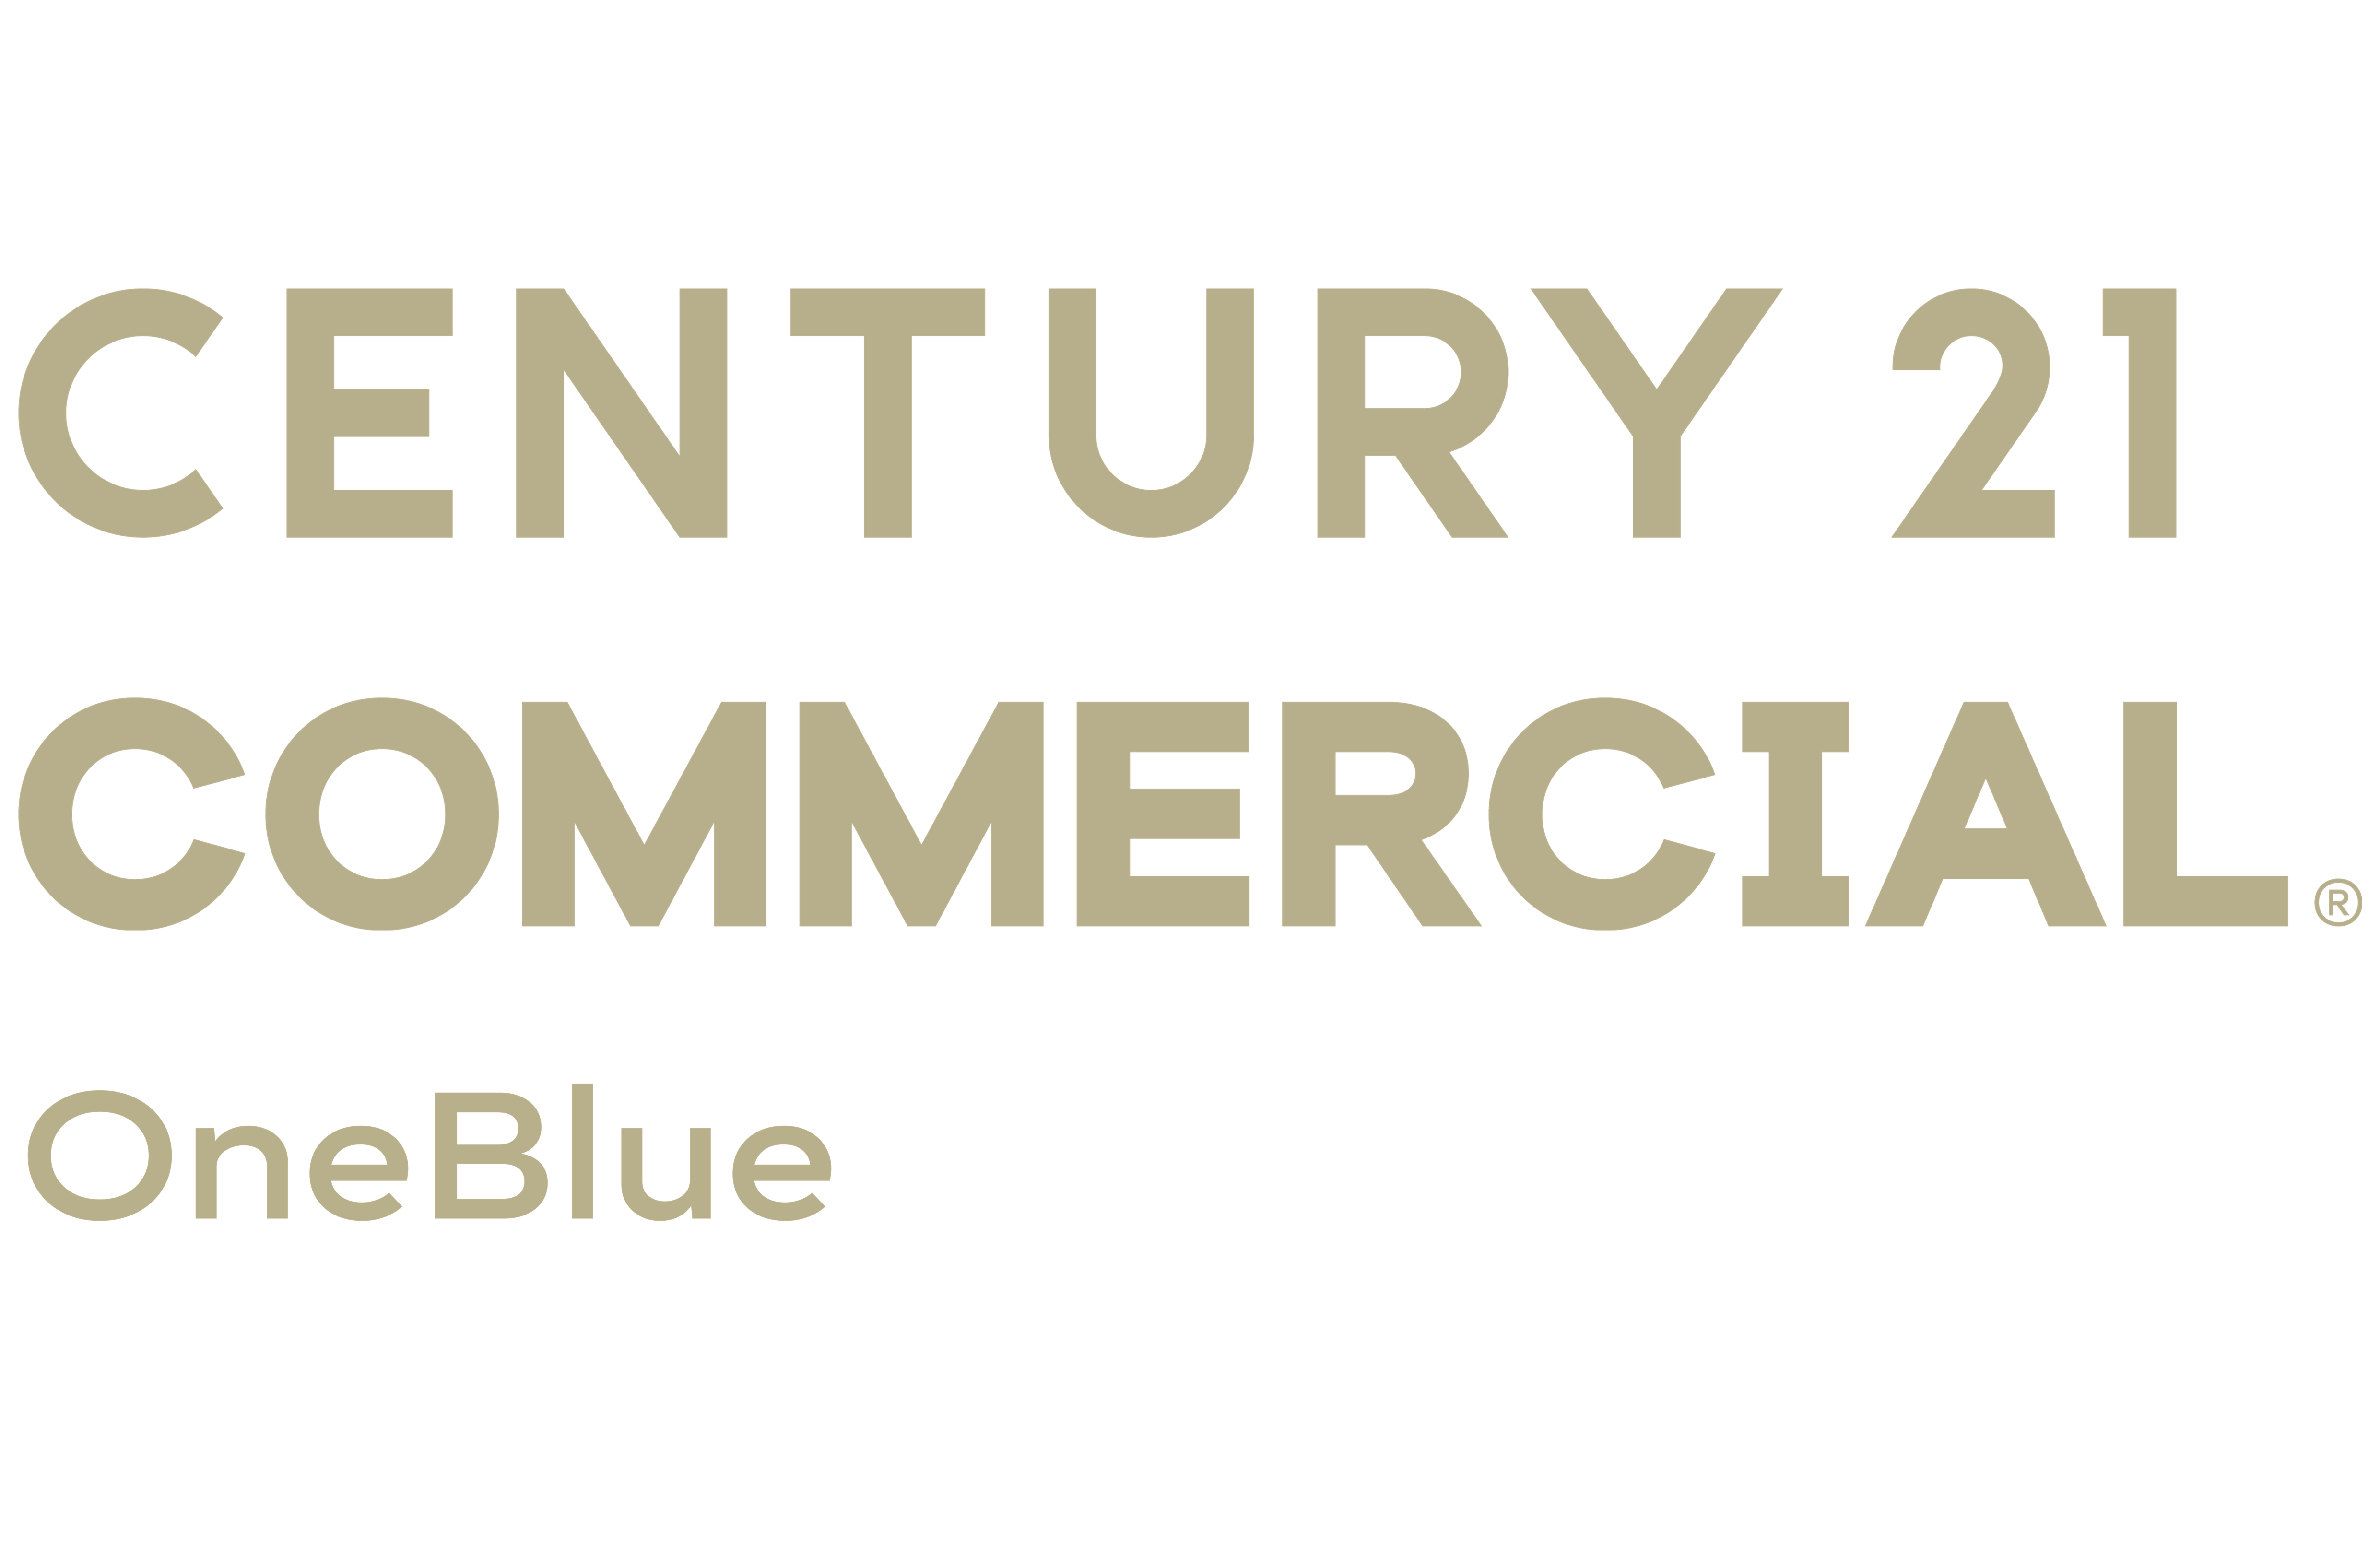 John Carpenter of CENTURY 21 OneBlue logo